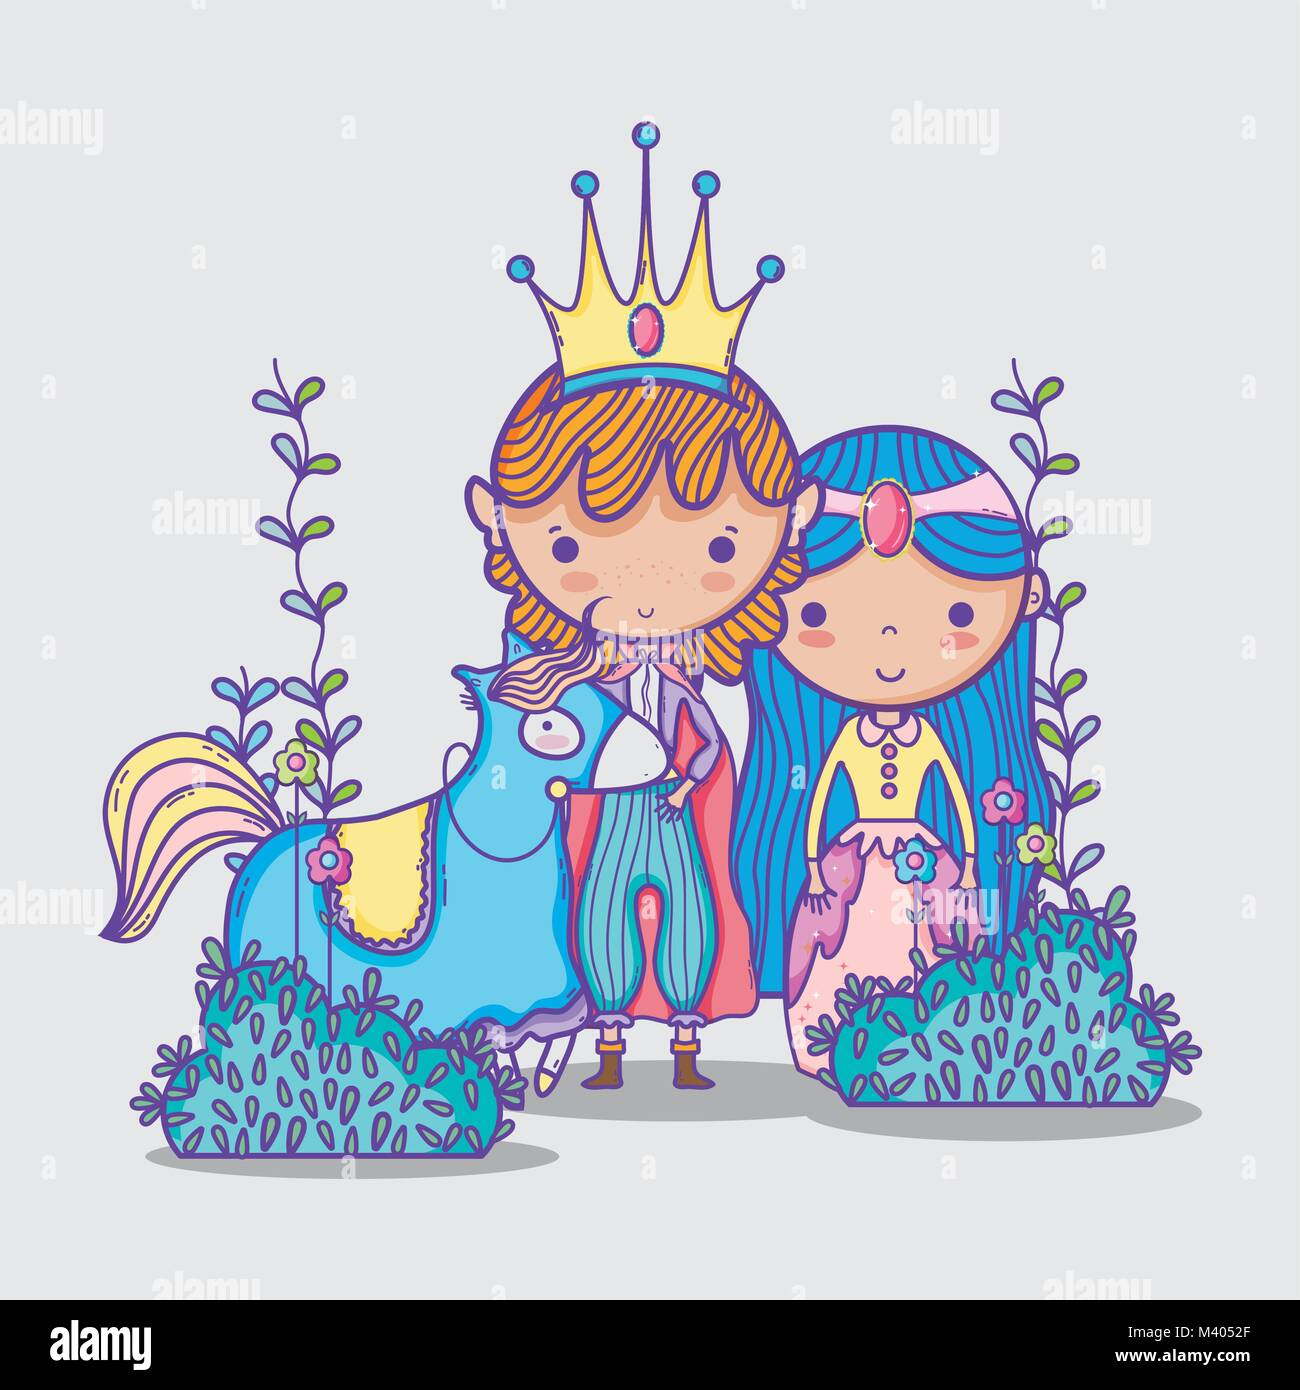 Princesses in magic world cartoon man with sunglasses and dollar symbol inside chat bubble - Stock Image